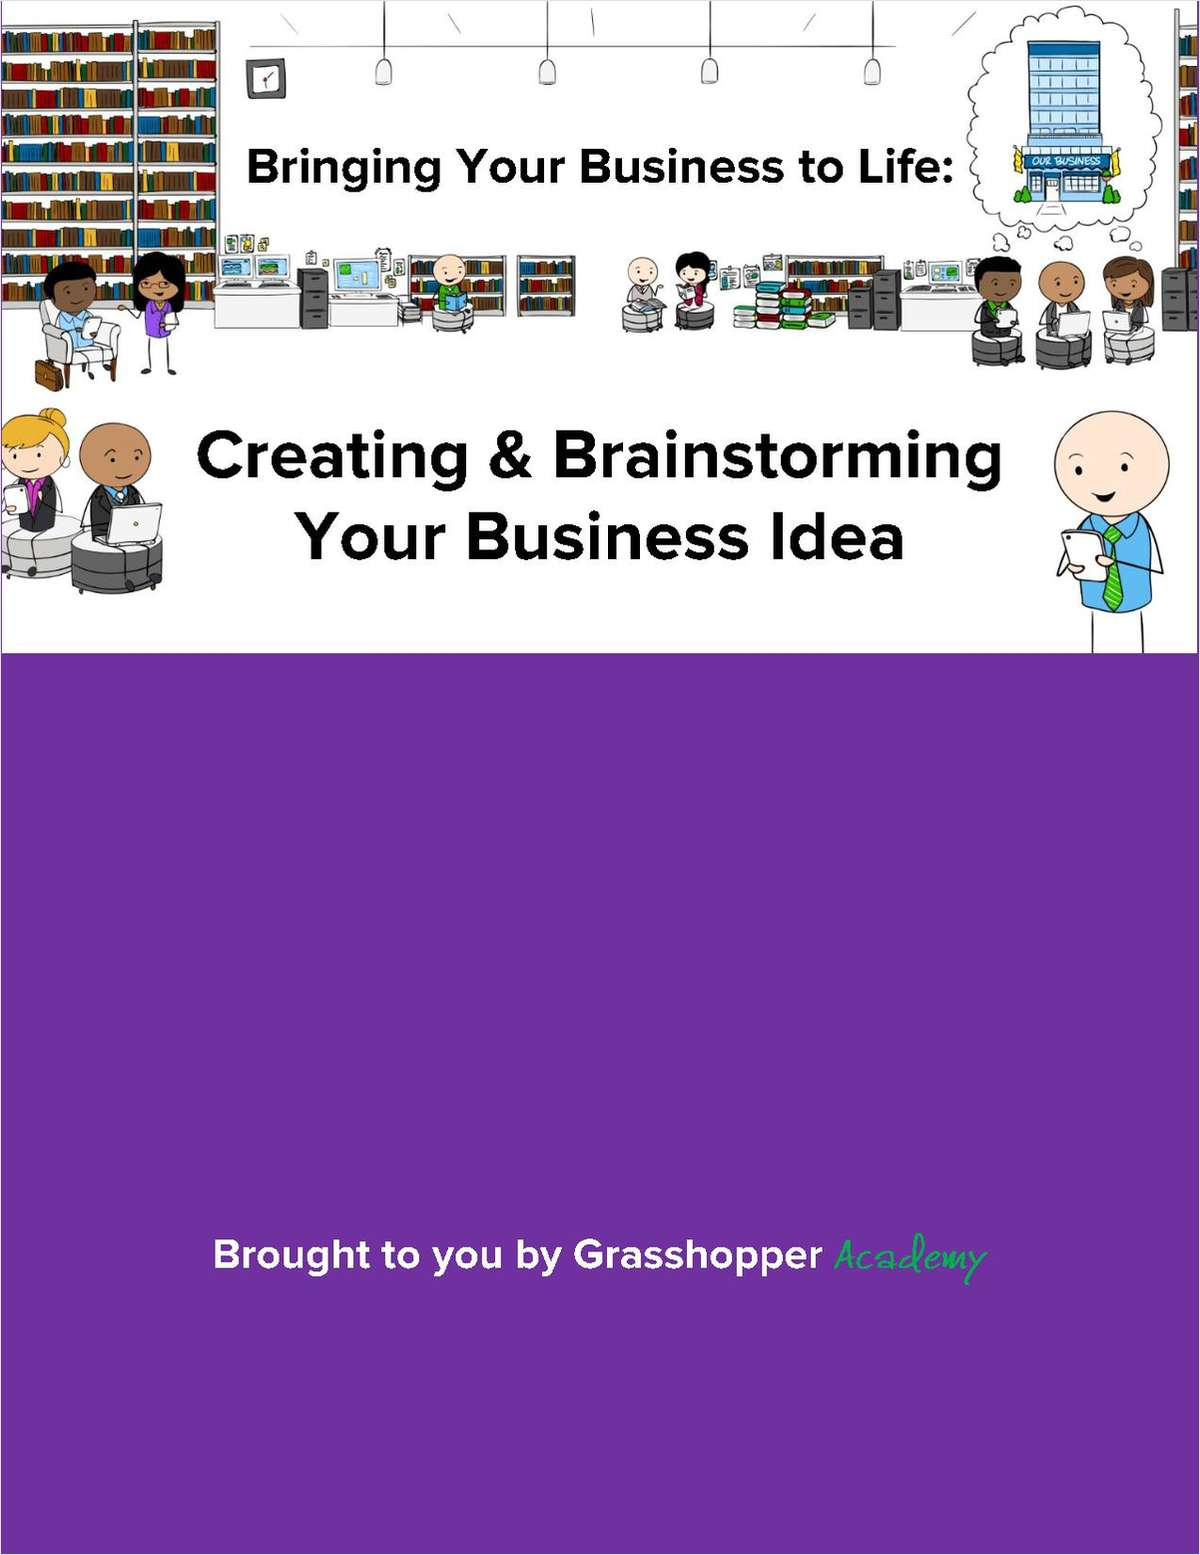 Bringing Your Business to Life: Creating & Brainstorming Your Business Idea